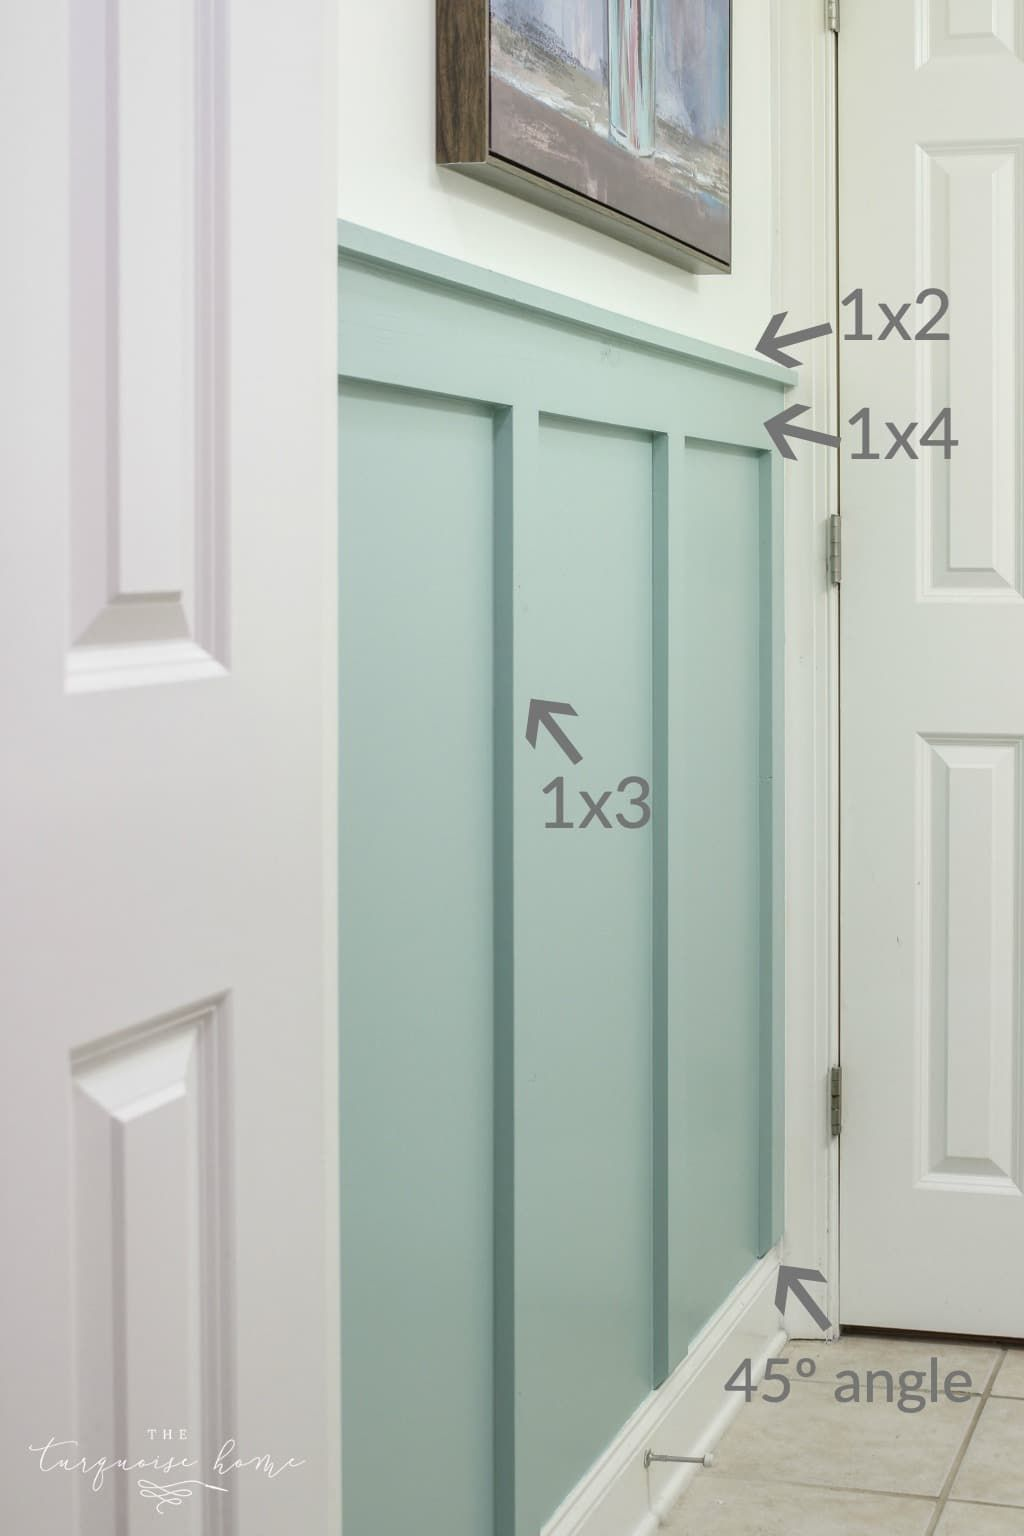 Diy Board And Batten In The Girls Bathroom The Turquoise Home Home Remodeling Home Projects Home Diy